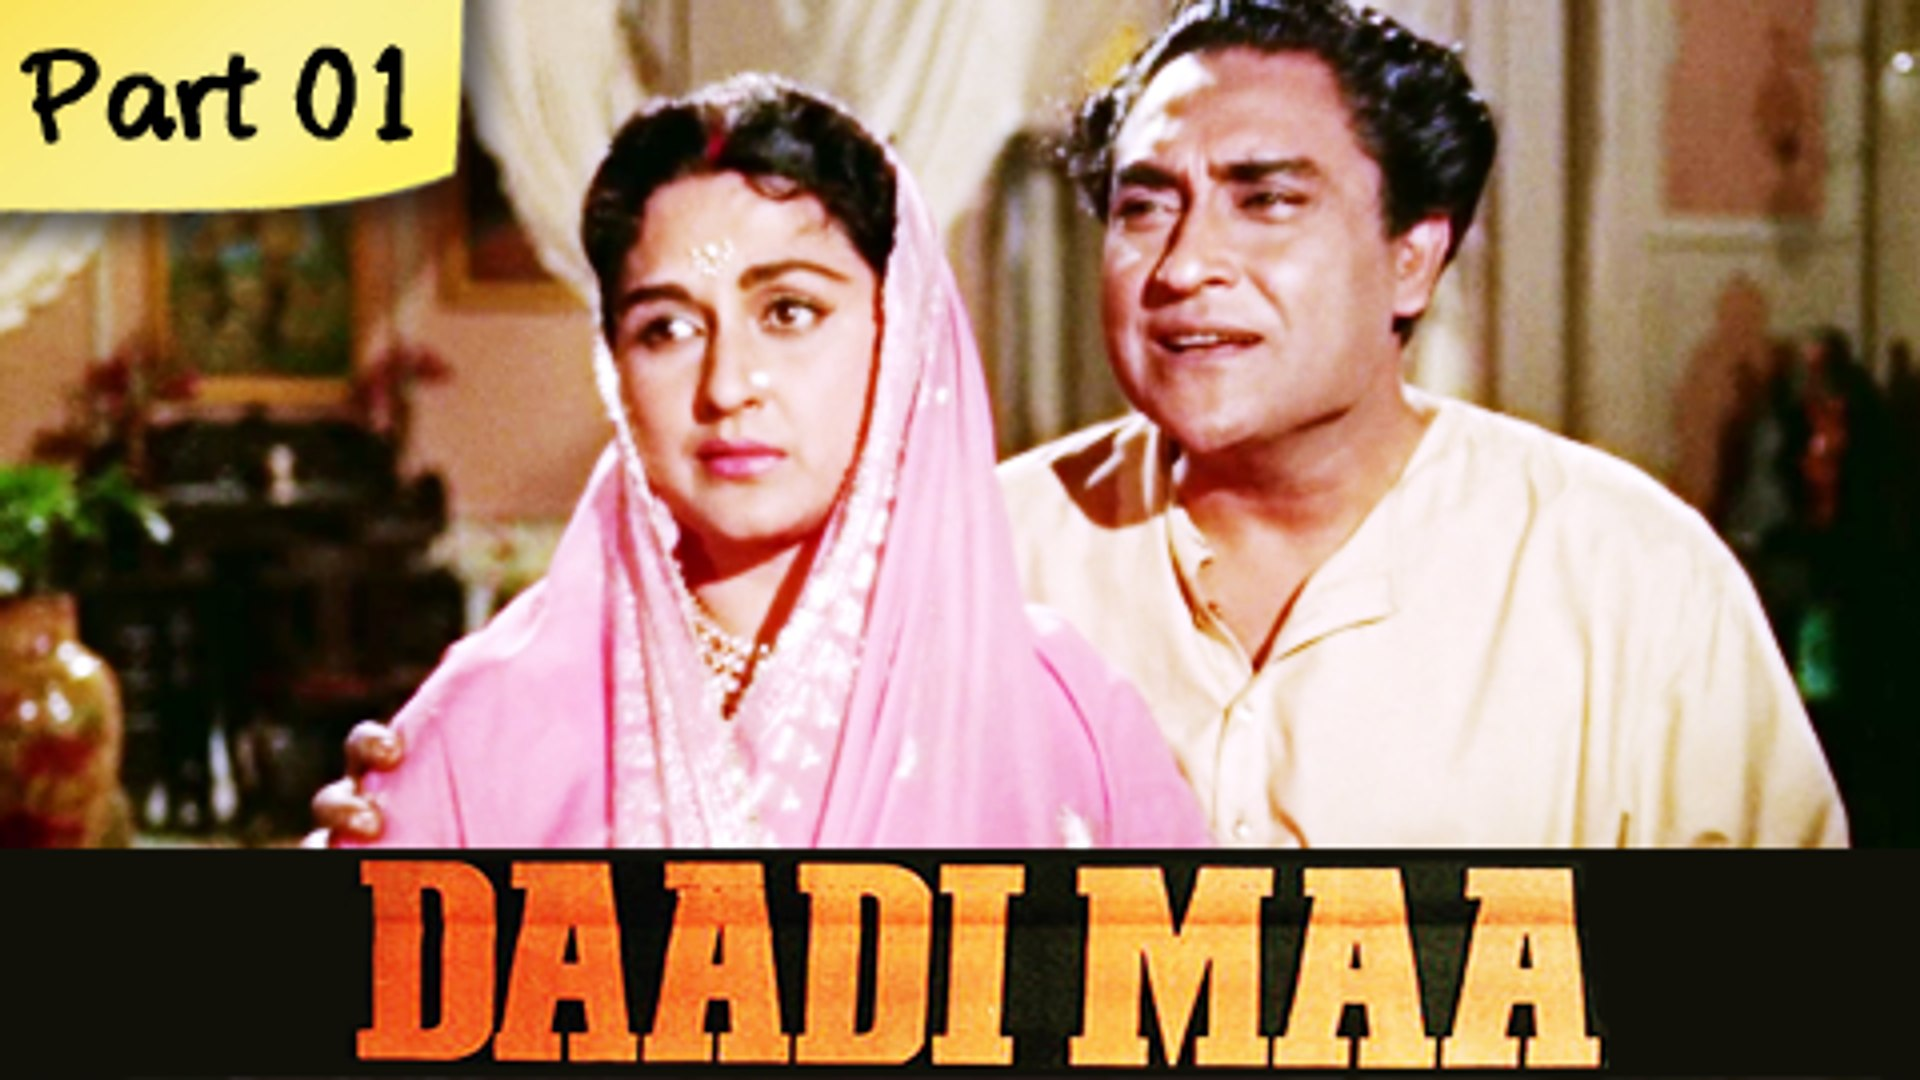 Daadi Maa - Part 01/14 - Super Hit Classic Bollywood Family Movie - Ashok Kumar, Mumtaz, Mehmood